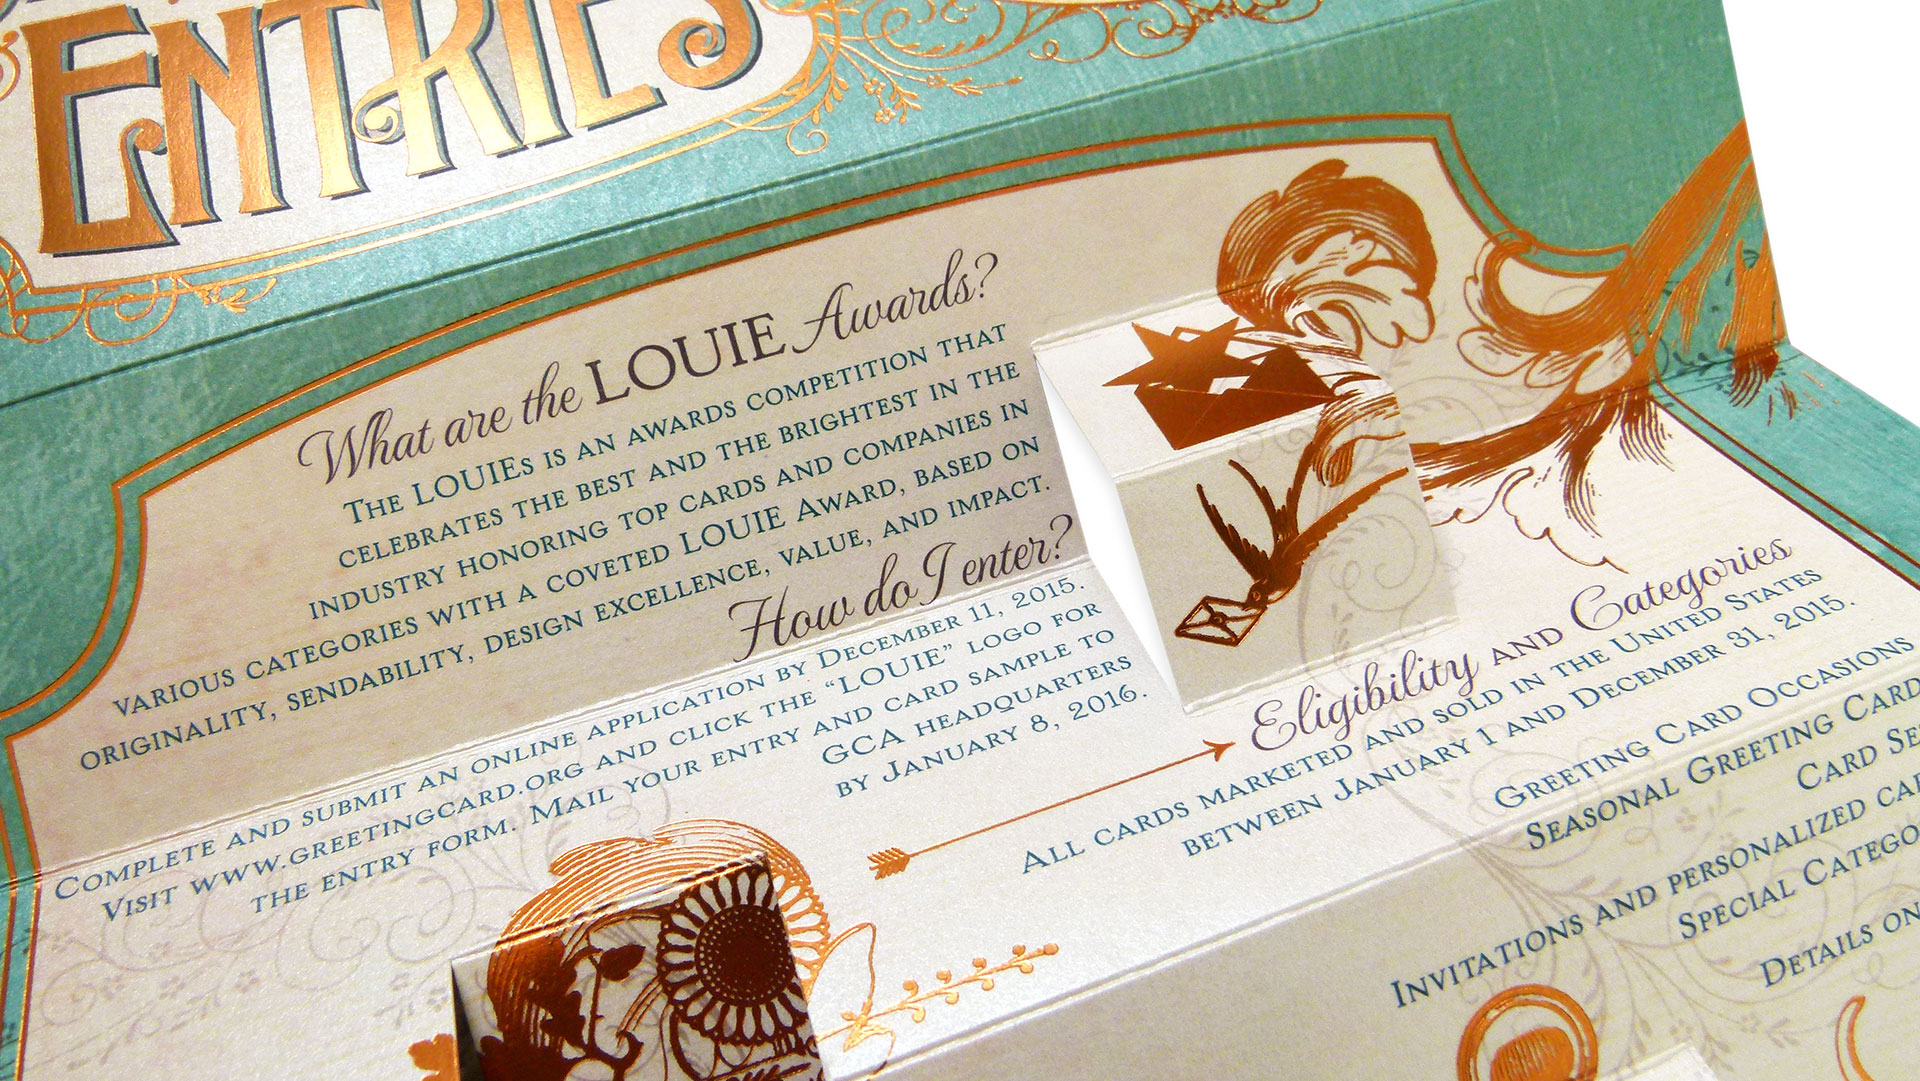 Louie awards call for entries paperspecs envelope 10 square flap print quantity 2500 production time 30 days printing method digital number of colors cmyk finishing and binding foil stamp kristyandbryce Gallery